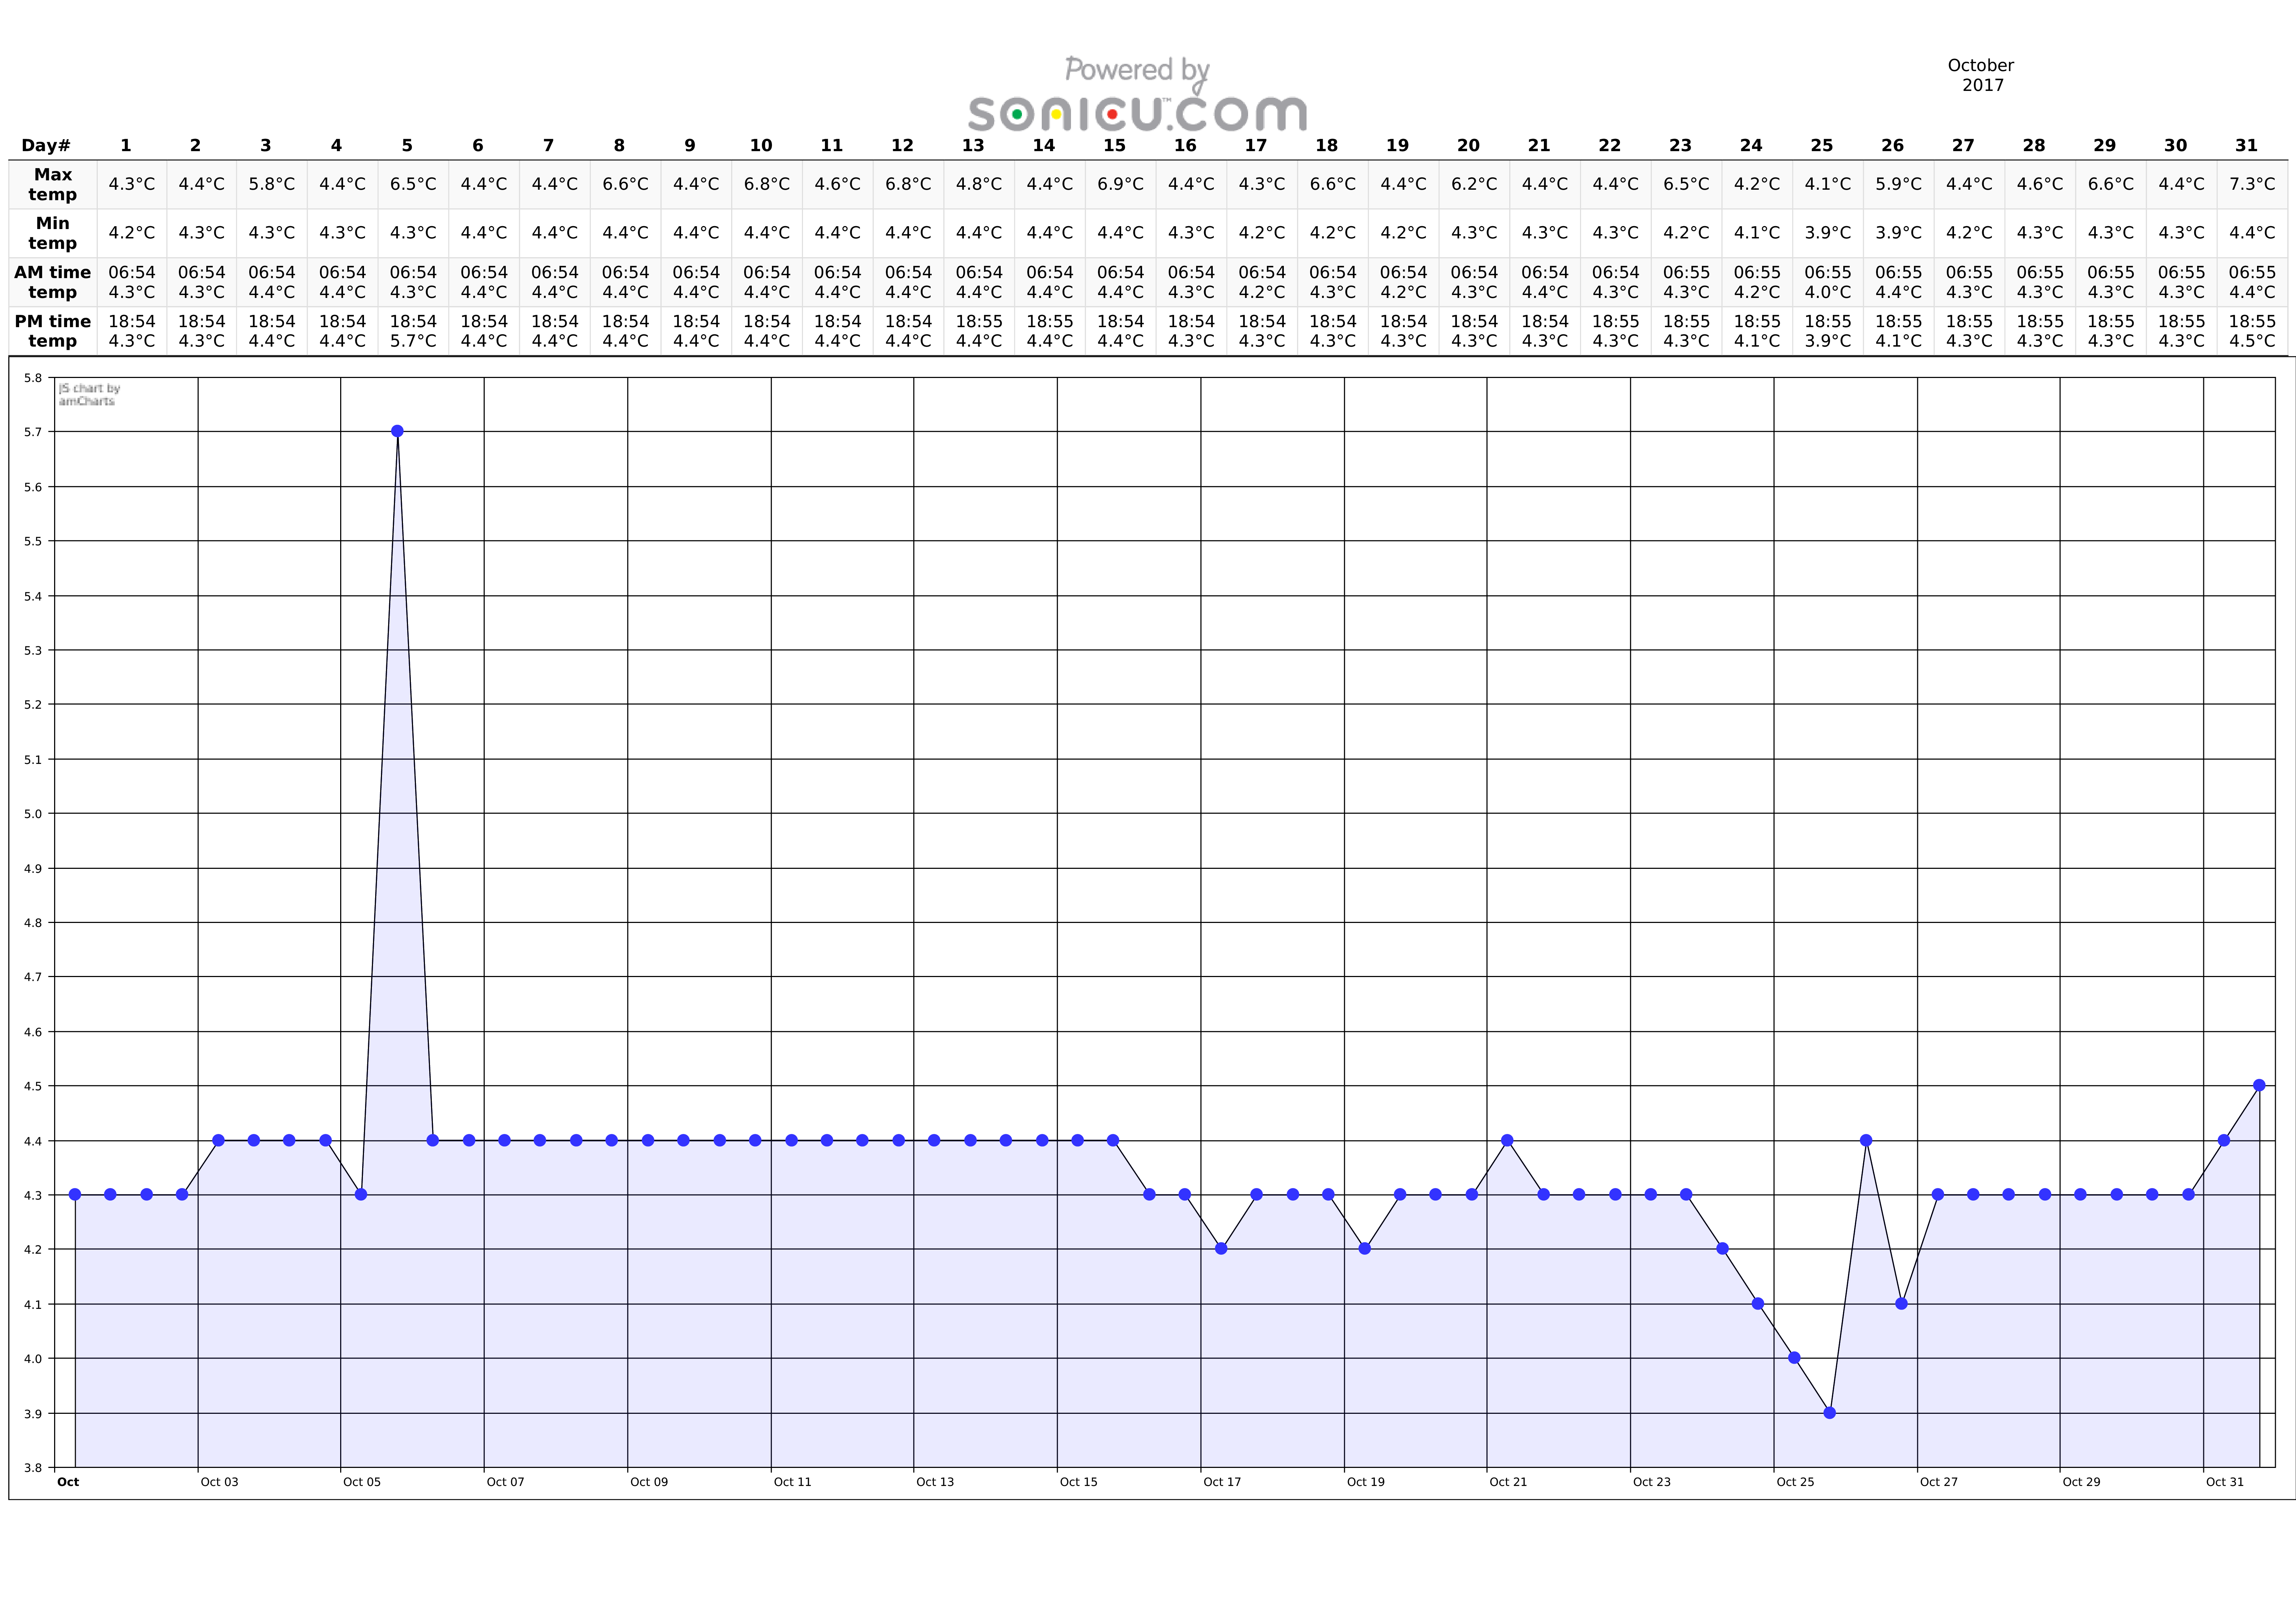 Sonic CDC-compliant temperature logs